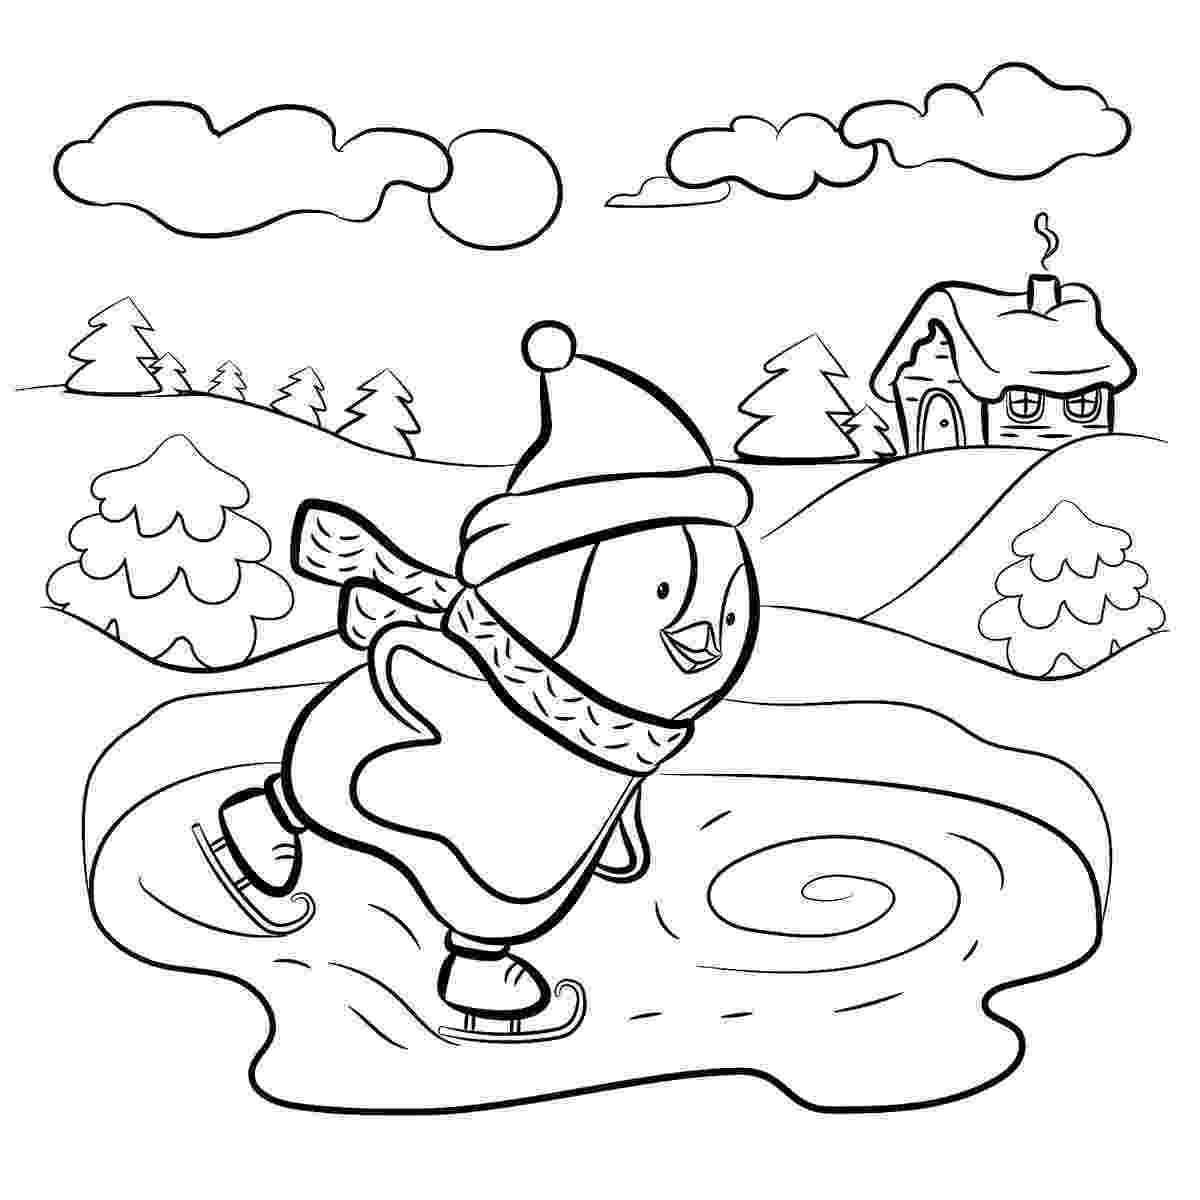 winter printable coloring pages free free printable winter coloring pages for kids winter coloring pages printable free